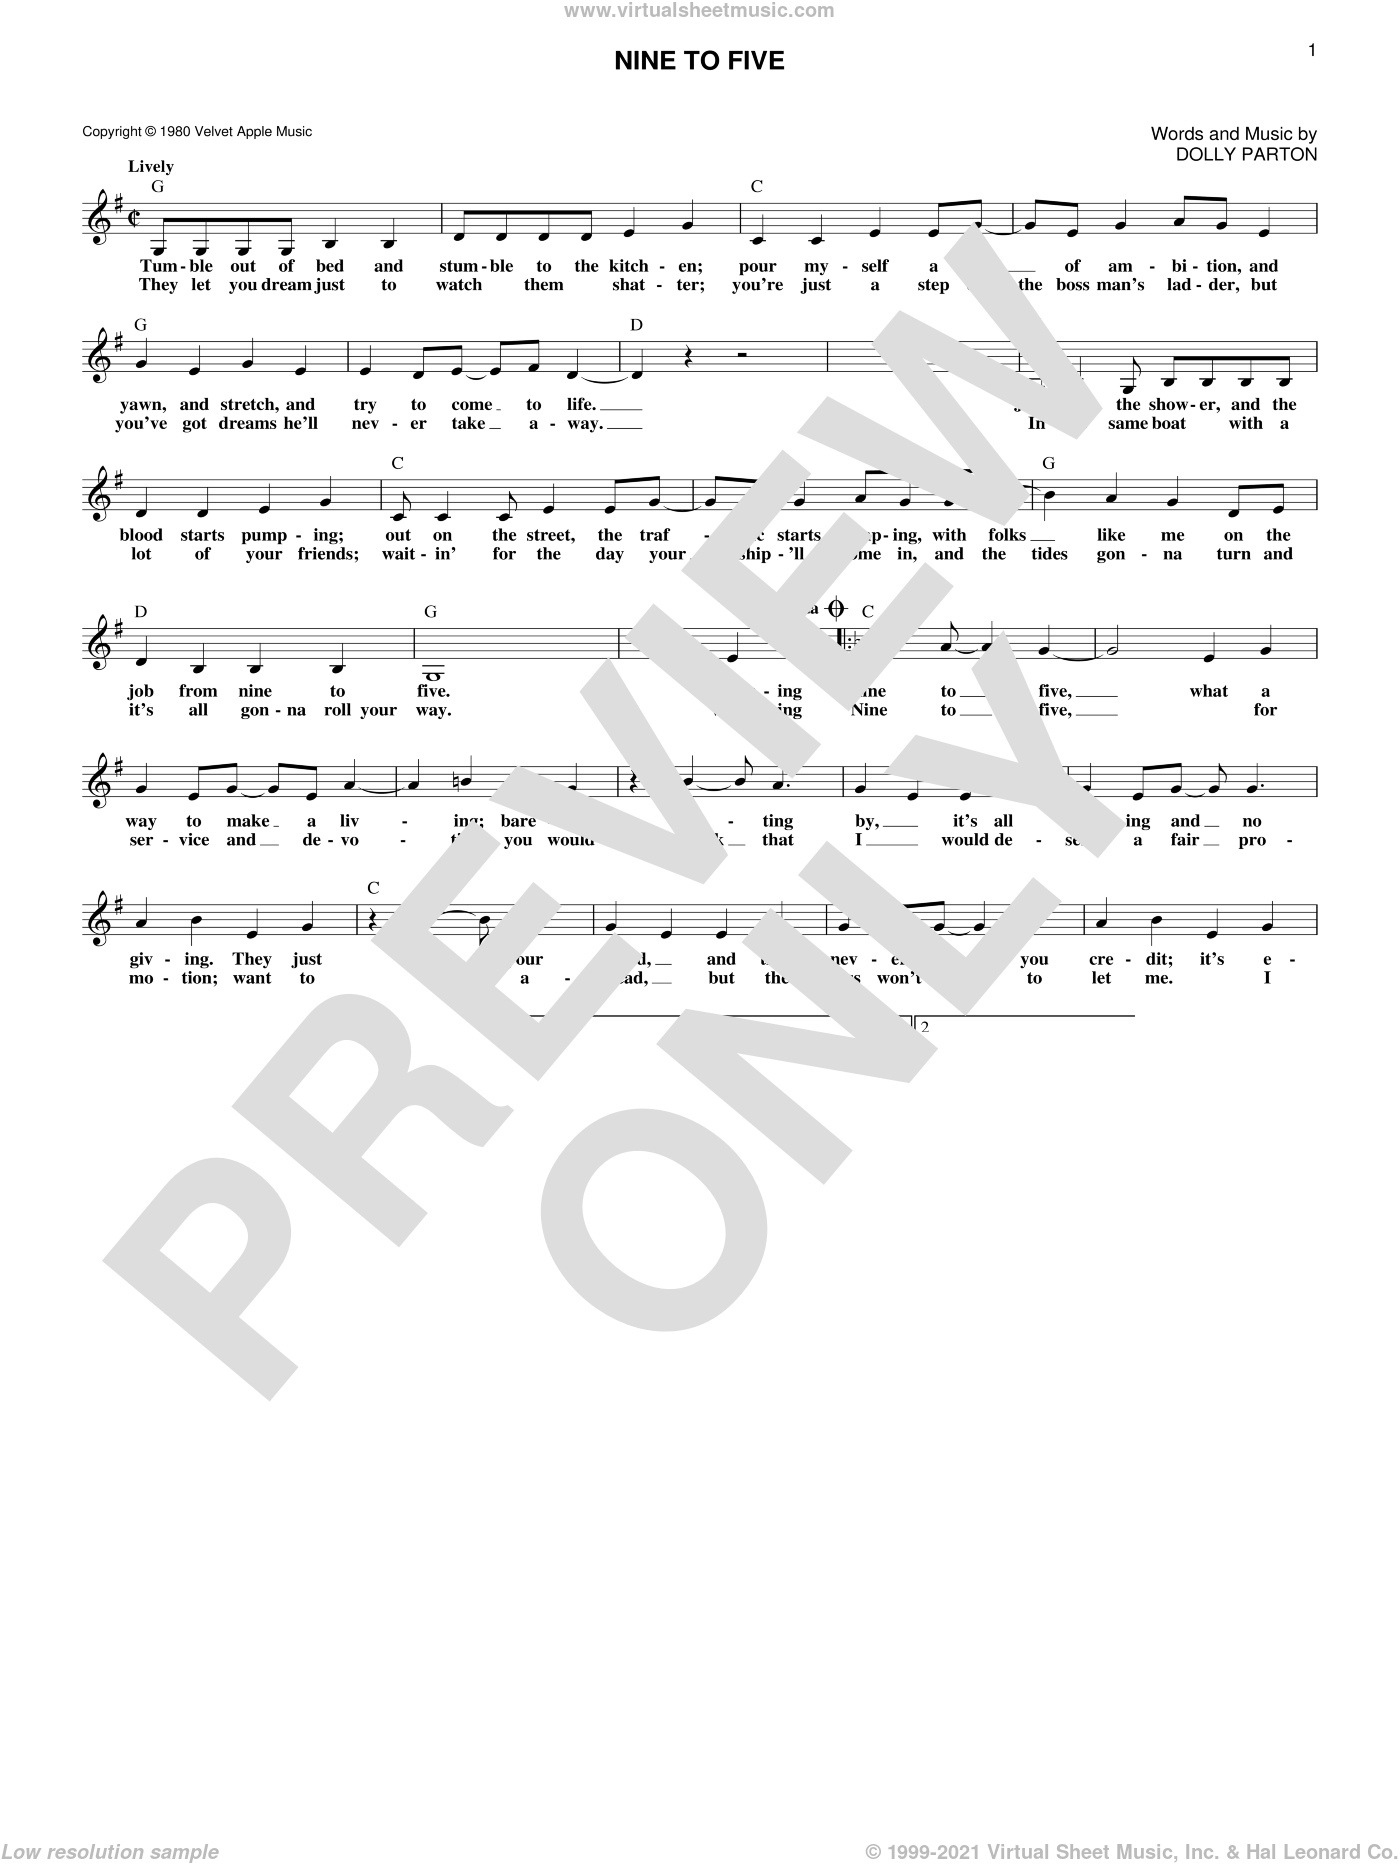 Nine To Five sheet music for voice and other instruments (fake book) by Dolly Parton, intermediate skill level